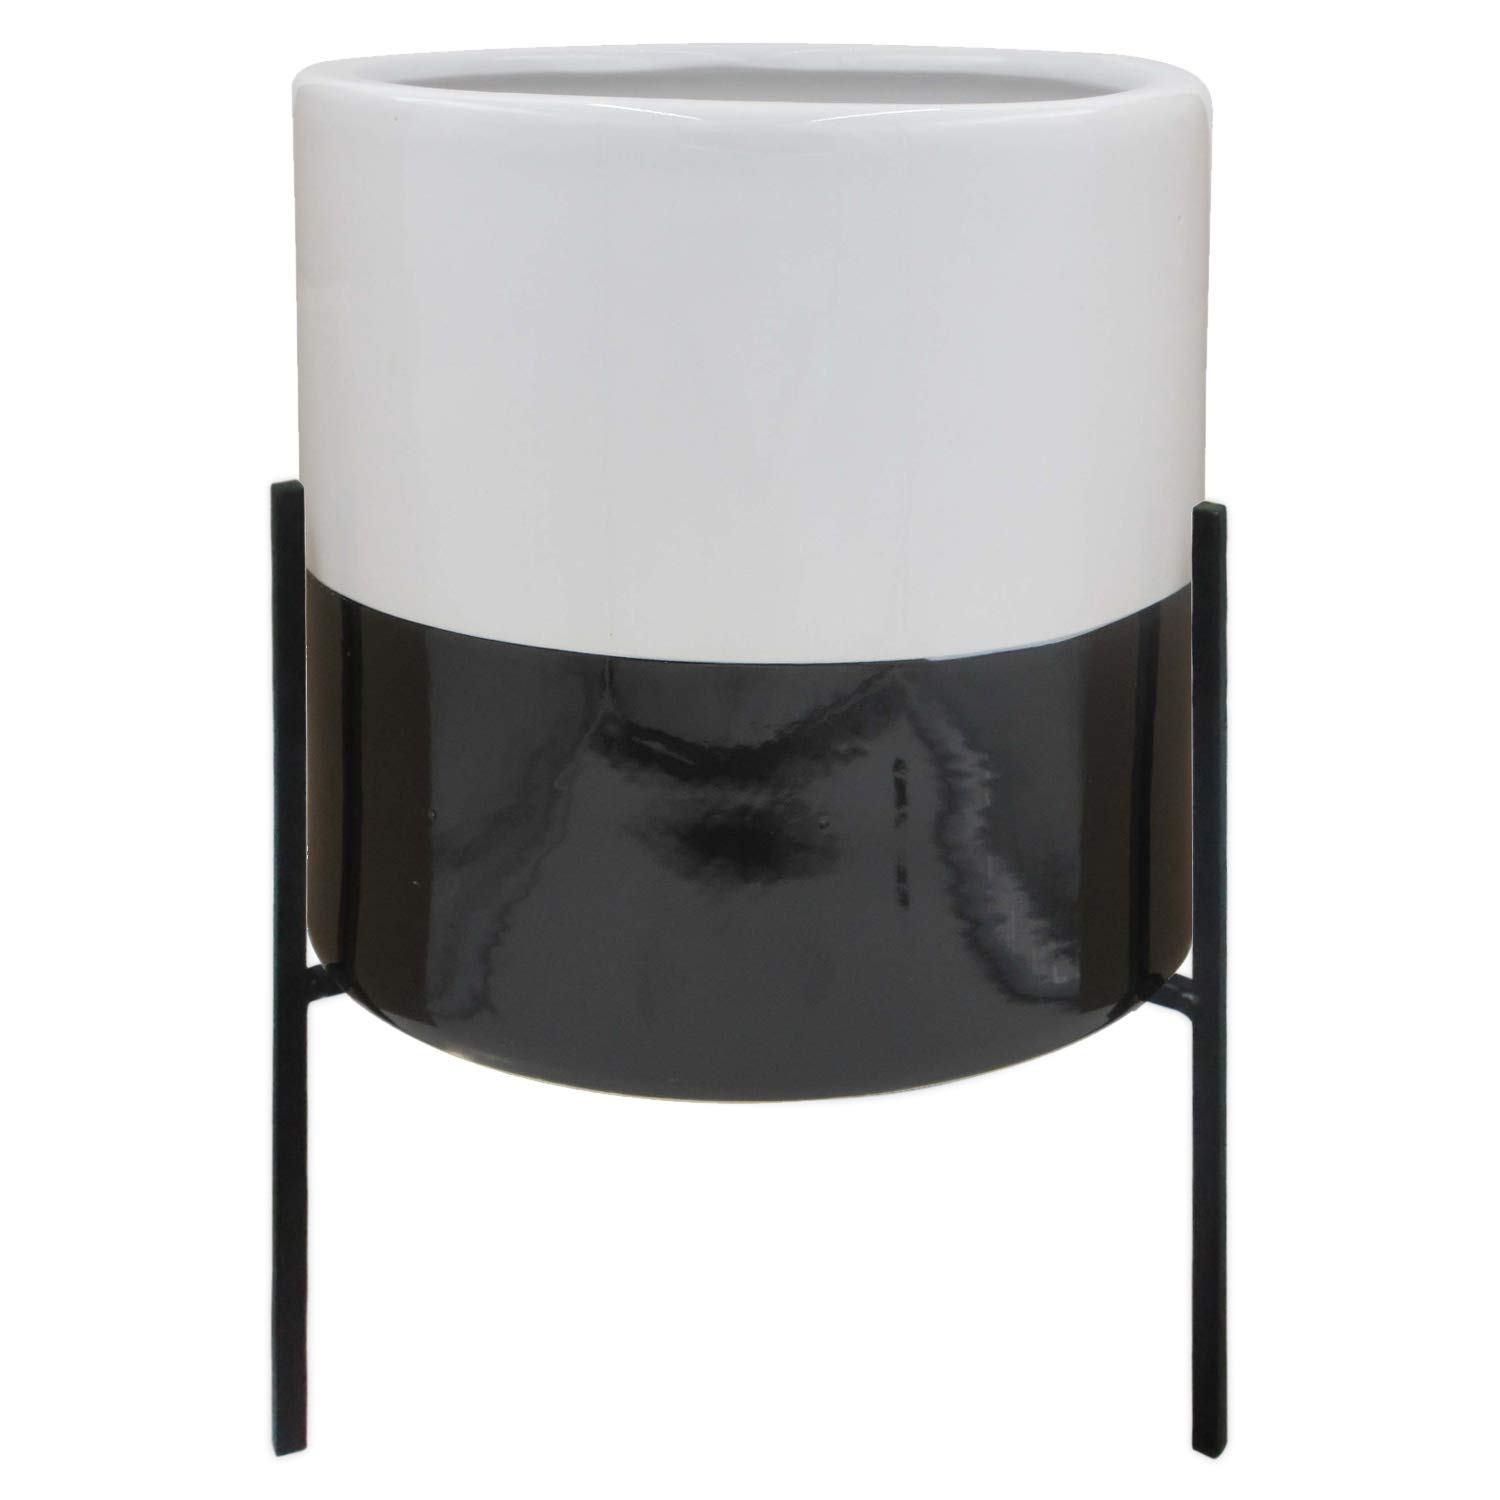 """Rivet Mid-Century Ceramic Planter with Iron Stand, 18.9""""H, Black and White"""